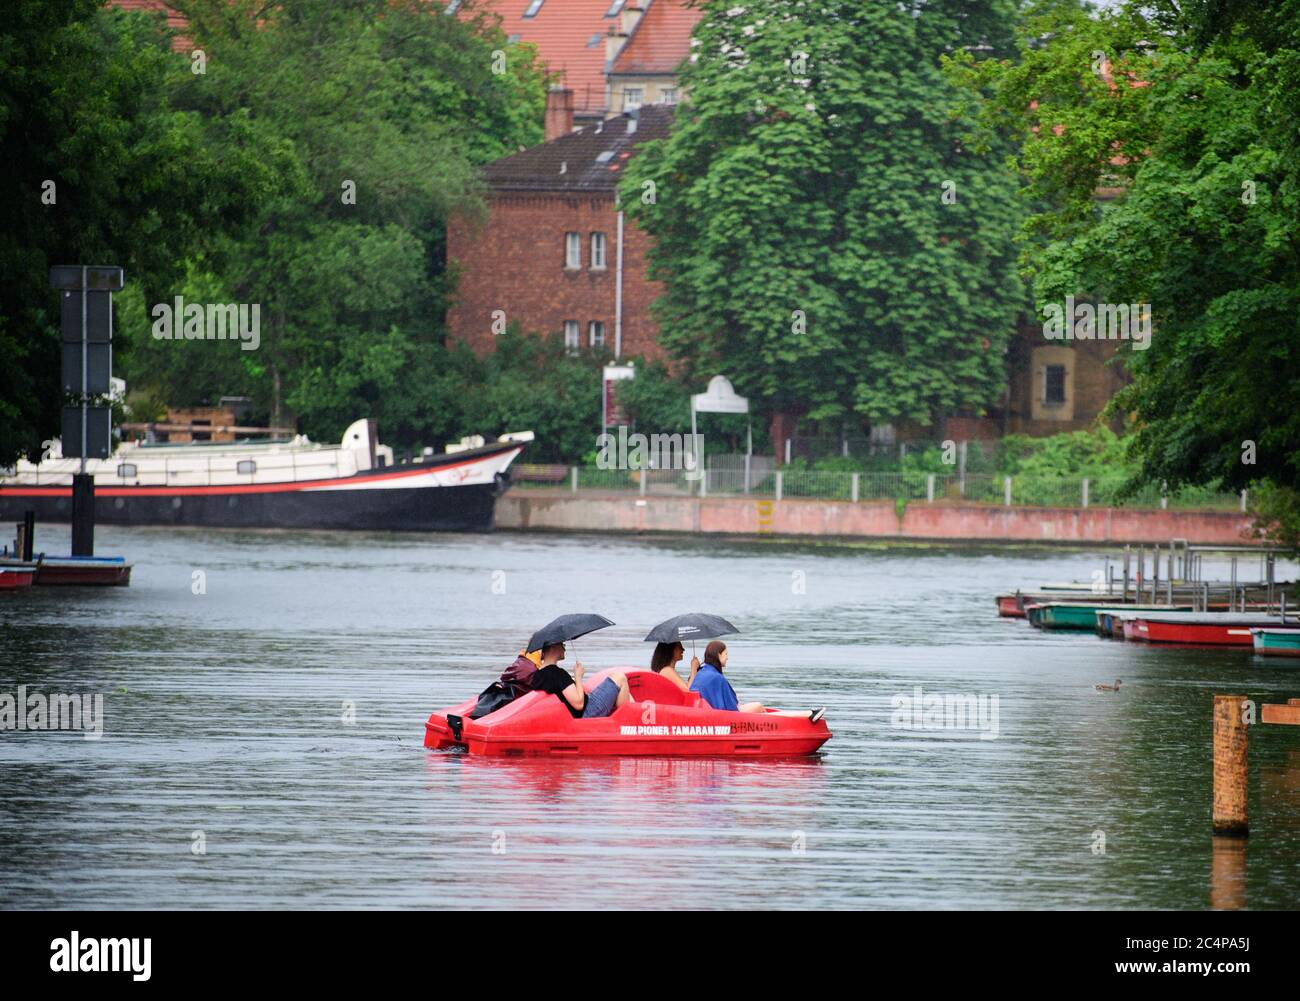 "Berlin, Germany. 28th June, 2020. Four young people ride under two umbrellas on a pedal boat in Köpenick in front of the backdrop of the event ship ""Ars Vivendi"" in the rain over the Alte Spree. Credit: Soeren Stache/dpa-Zentralbild/dpa/Alamy Live News Stock Photo"